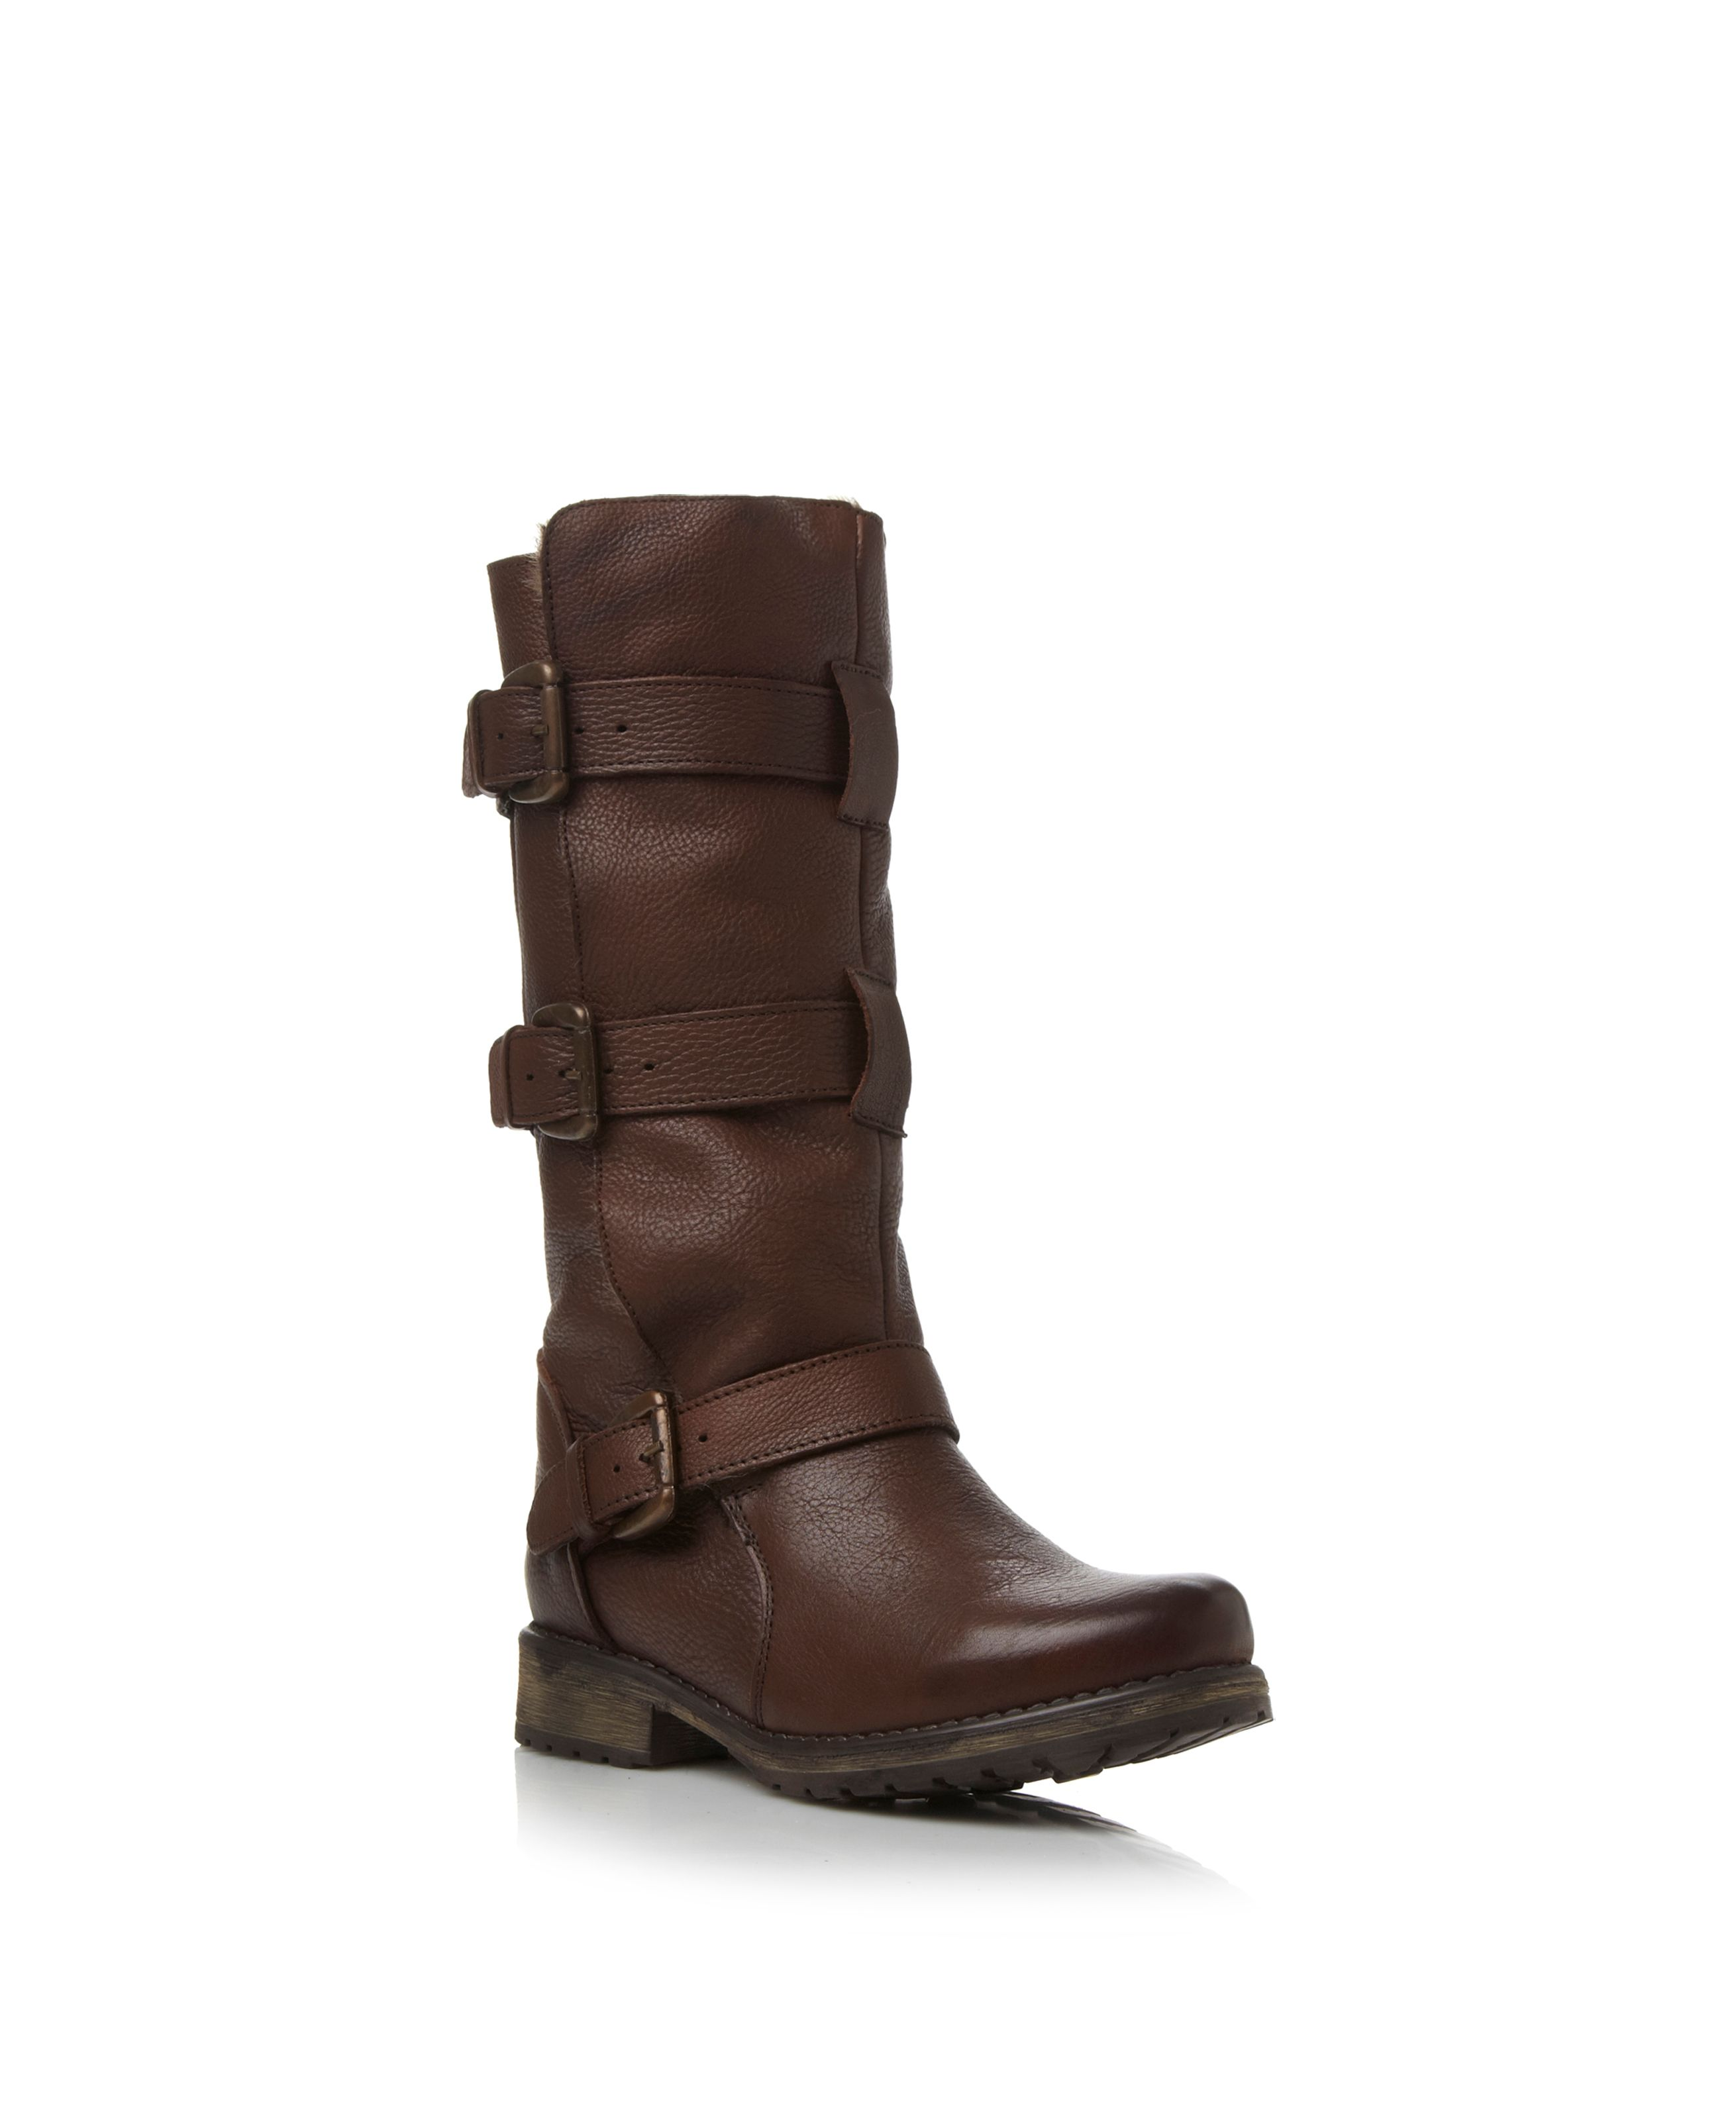 steve madden fur lined buckle detail boots in brown lyst